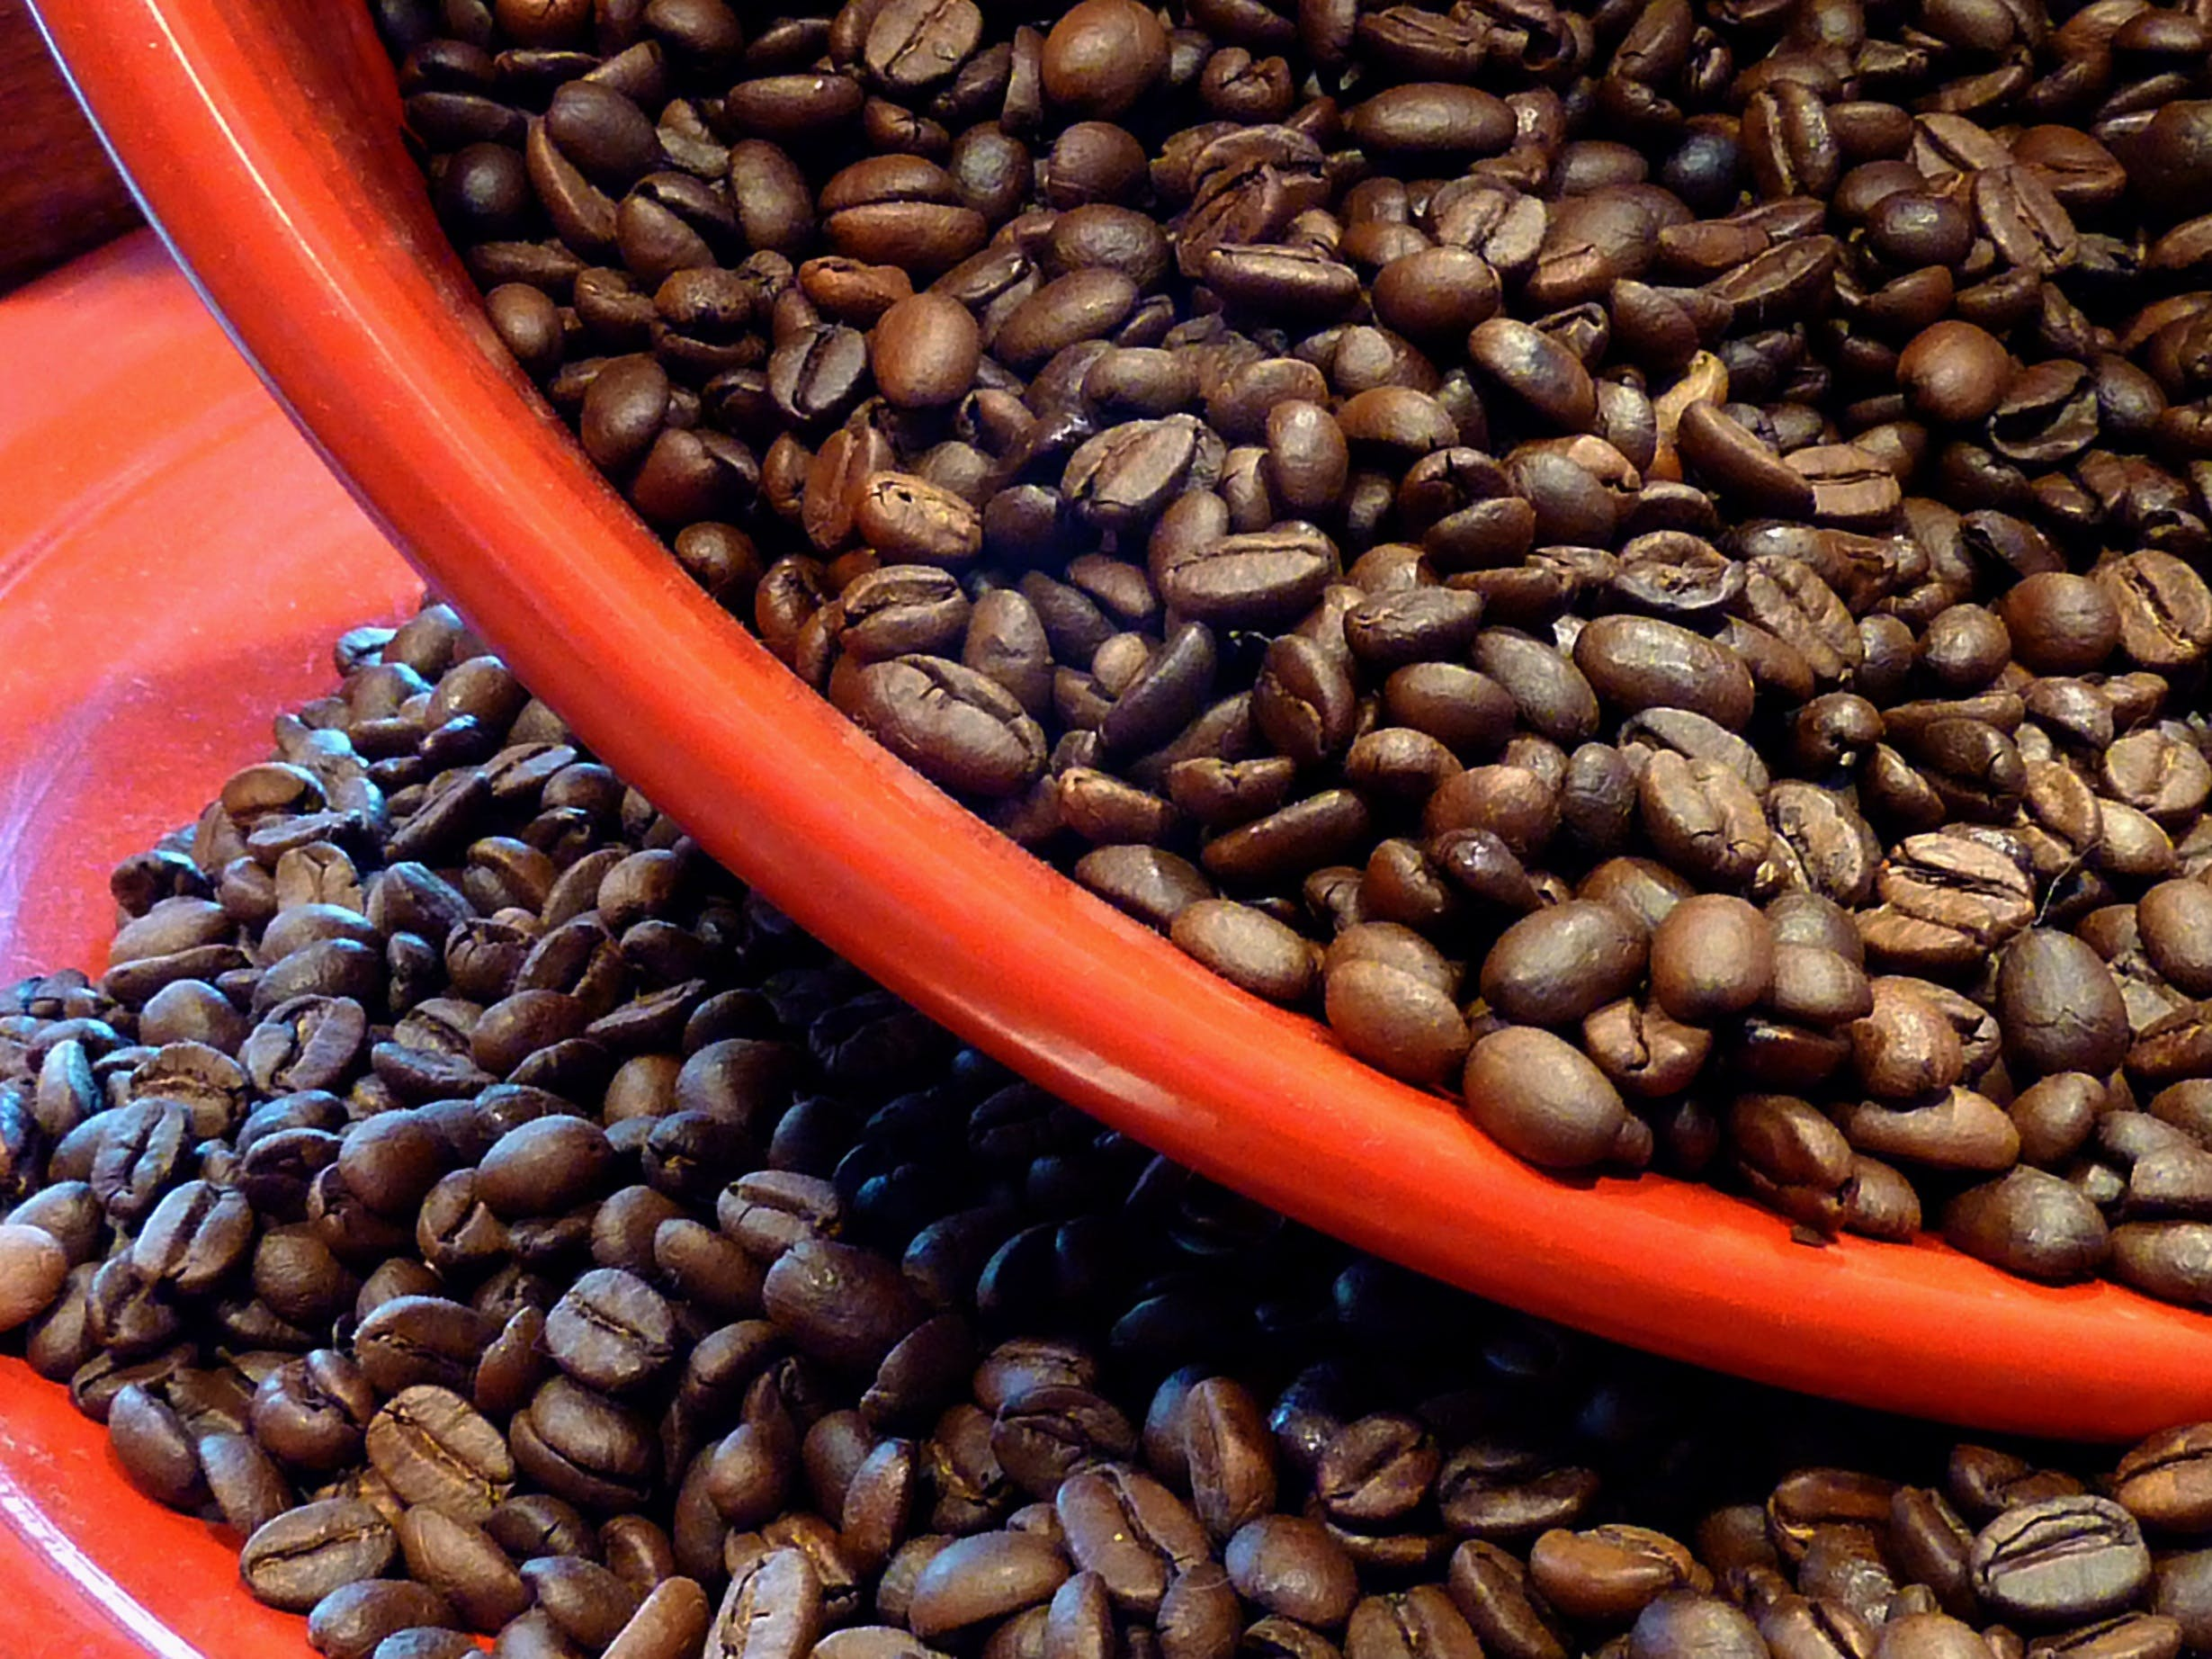 Bowl of Coffee Beans